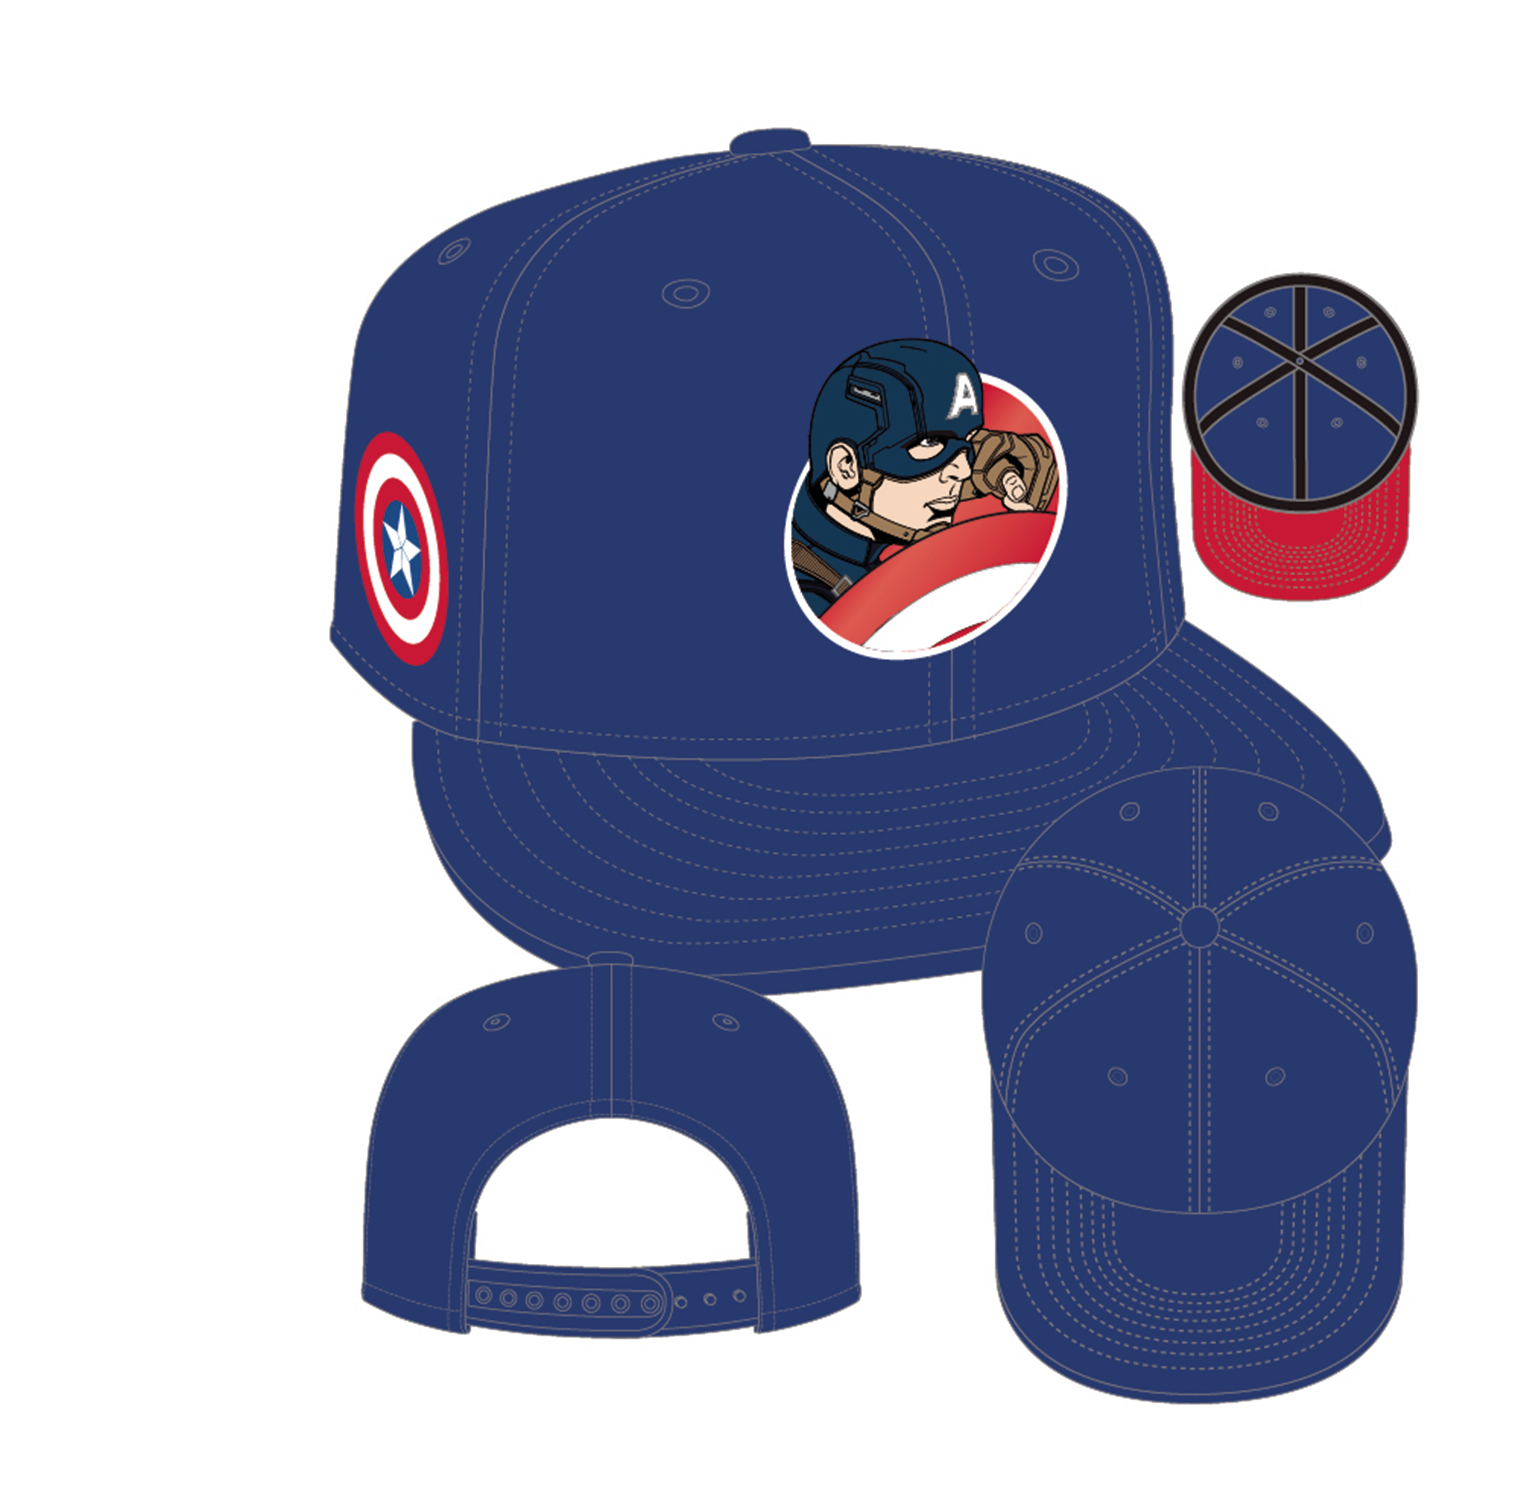 CAPTAIN AMERICA 3 CAPT AMERICA RETROFLECT 950 SNAP BACK CAP